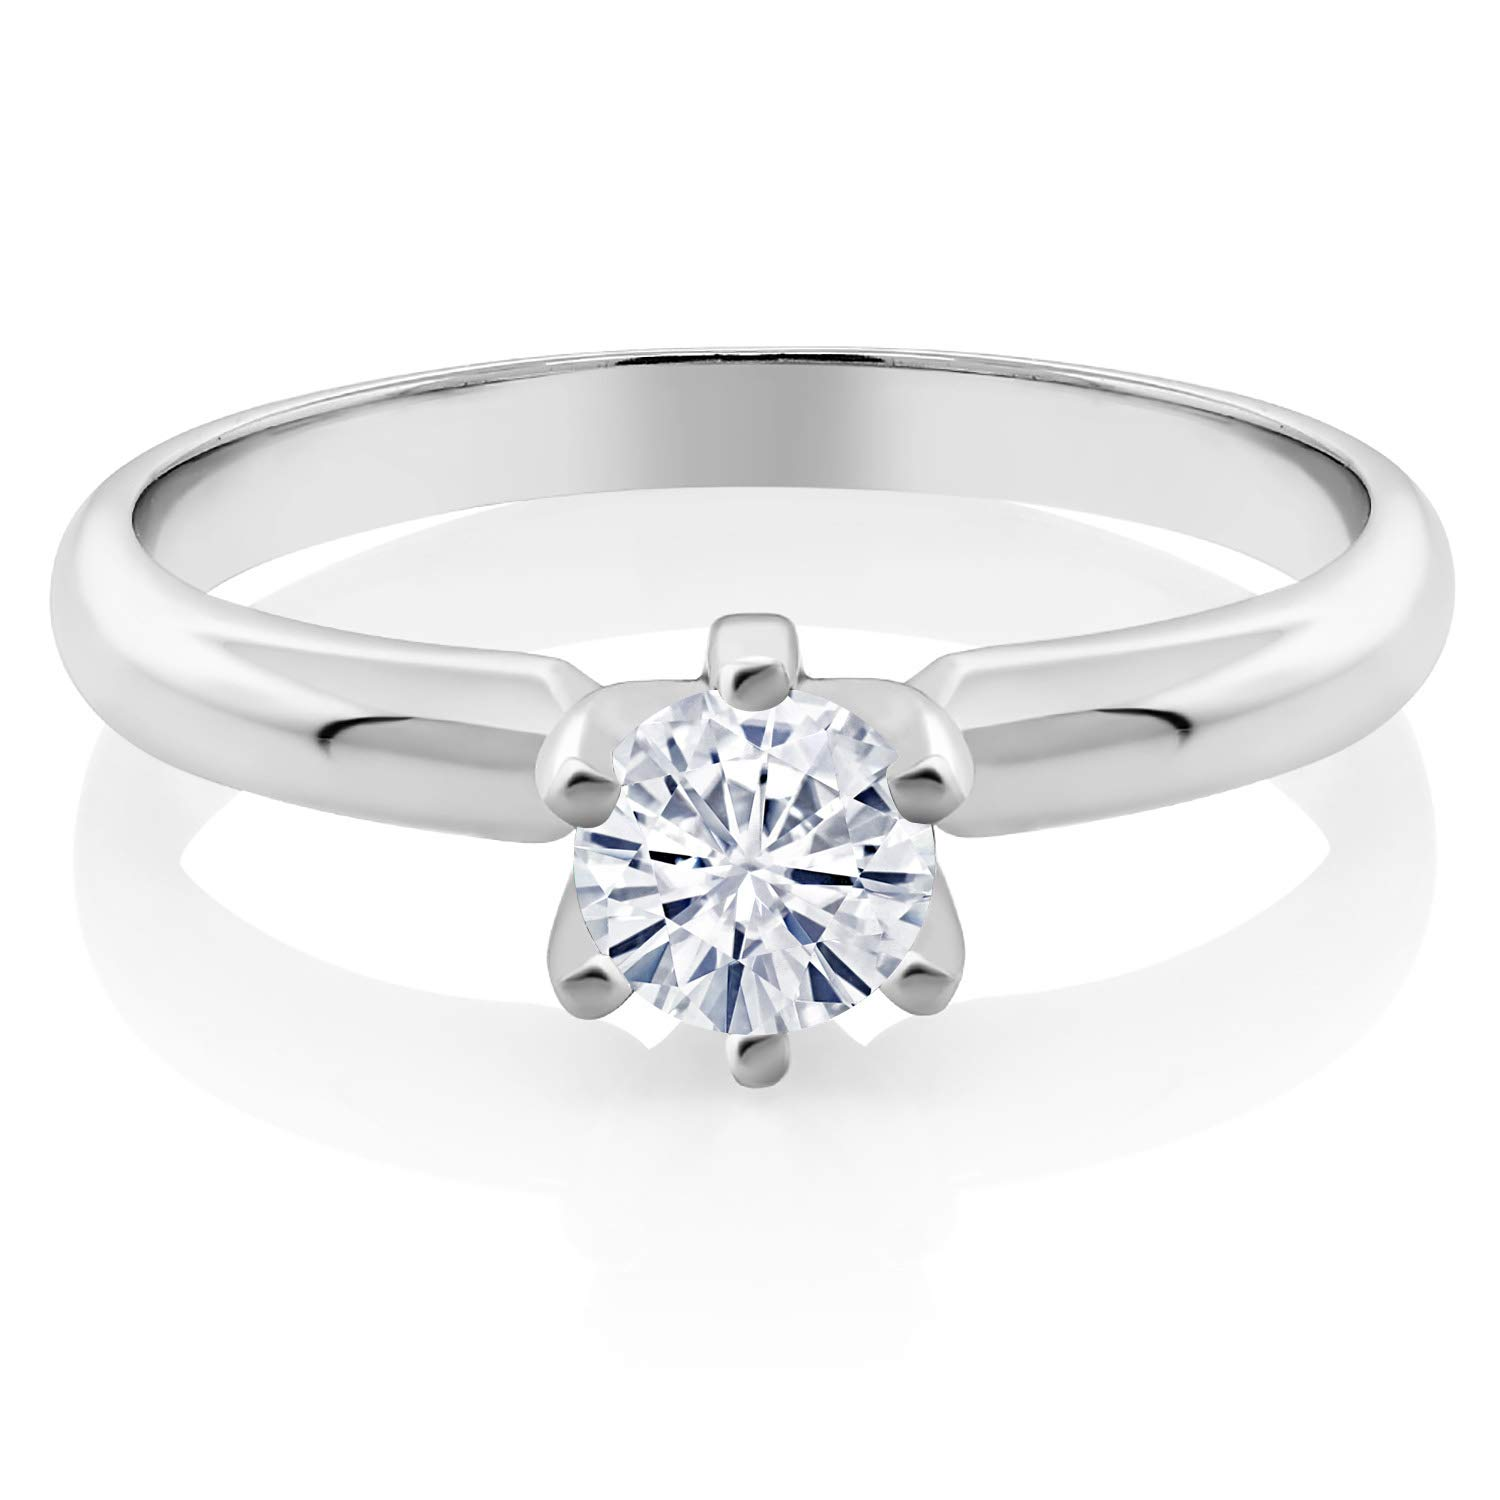 925 Sterling Silver Solitaire Ring Set Round Forever Brilliant Near Colorless (GHI) 0.50 ct (DEW) Created Moissanite from Charles & Colvard